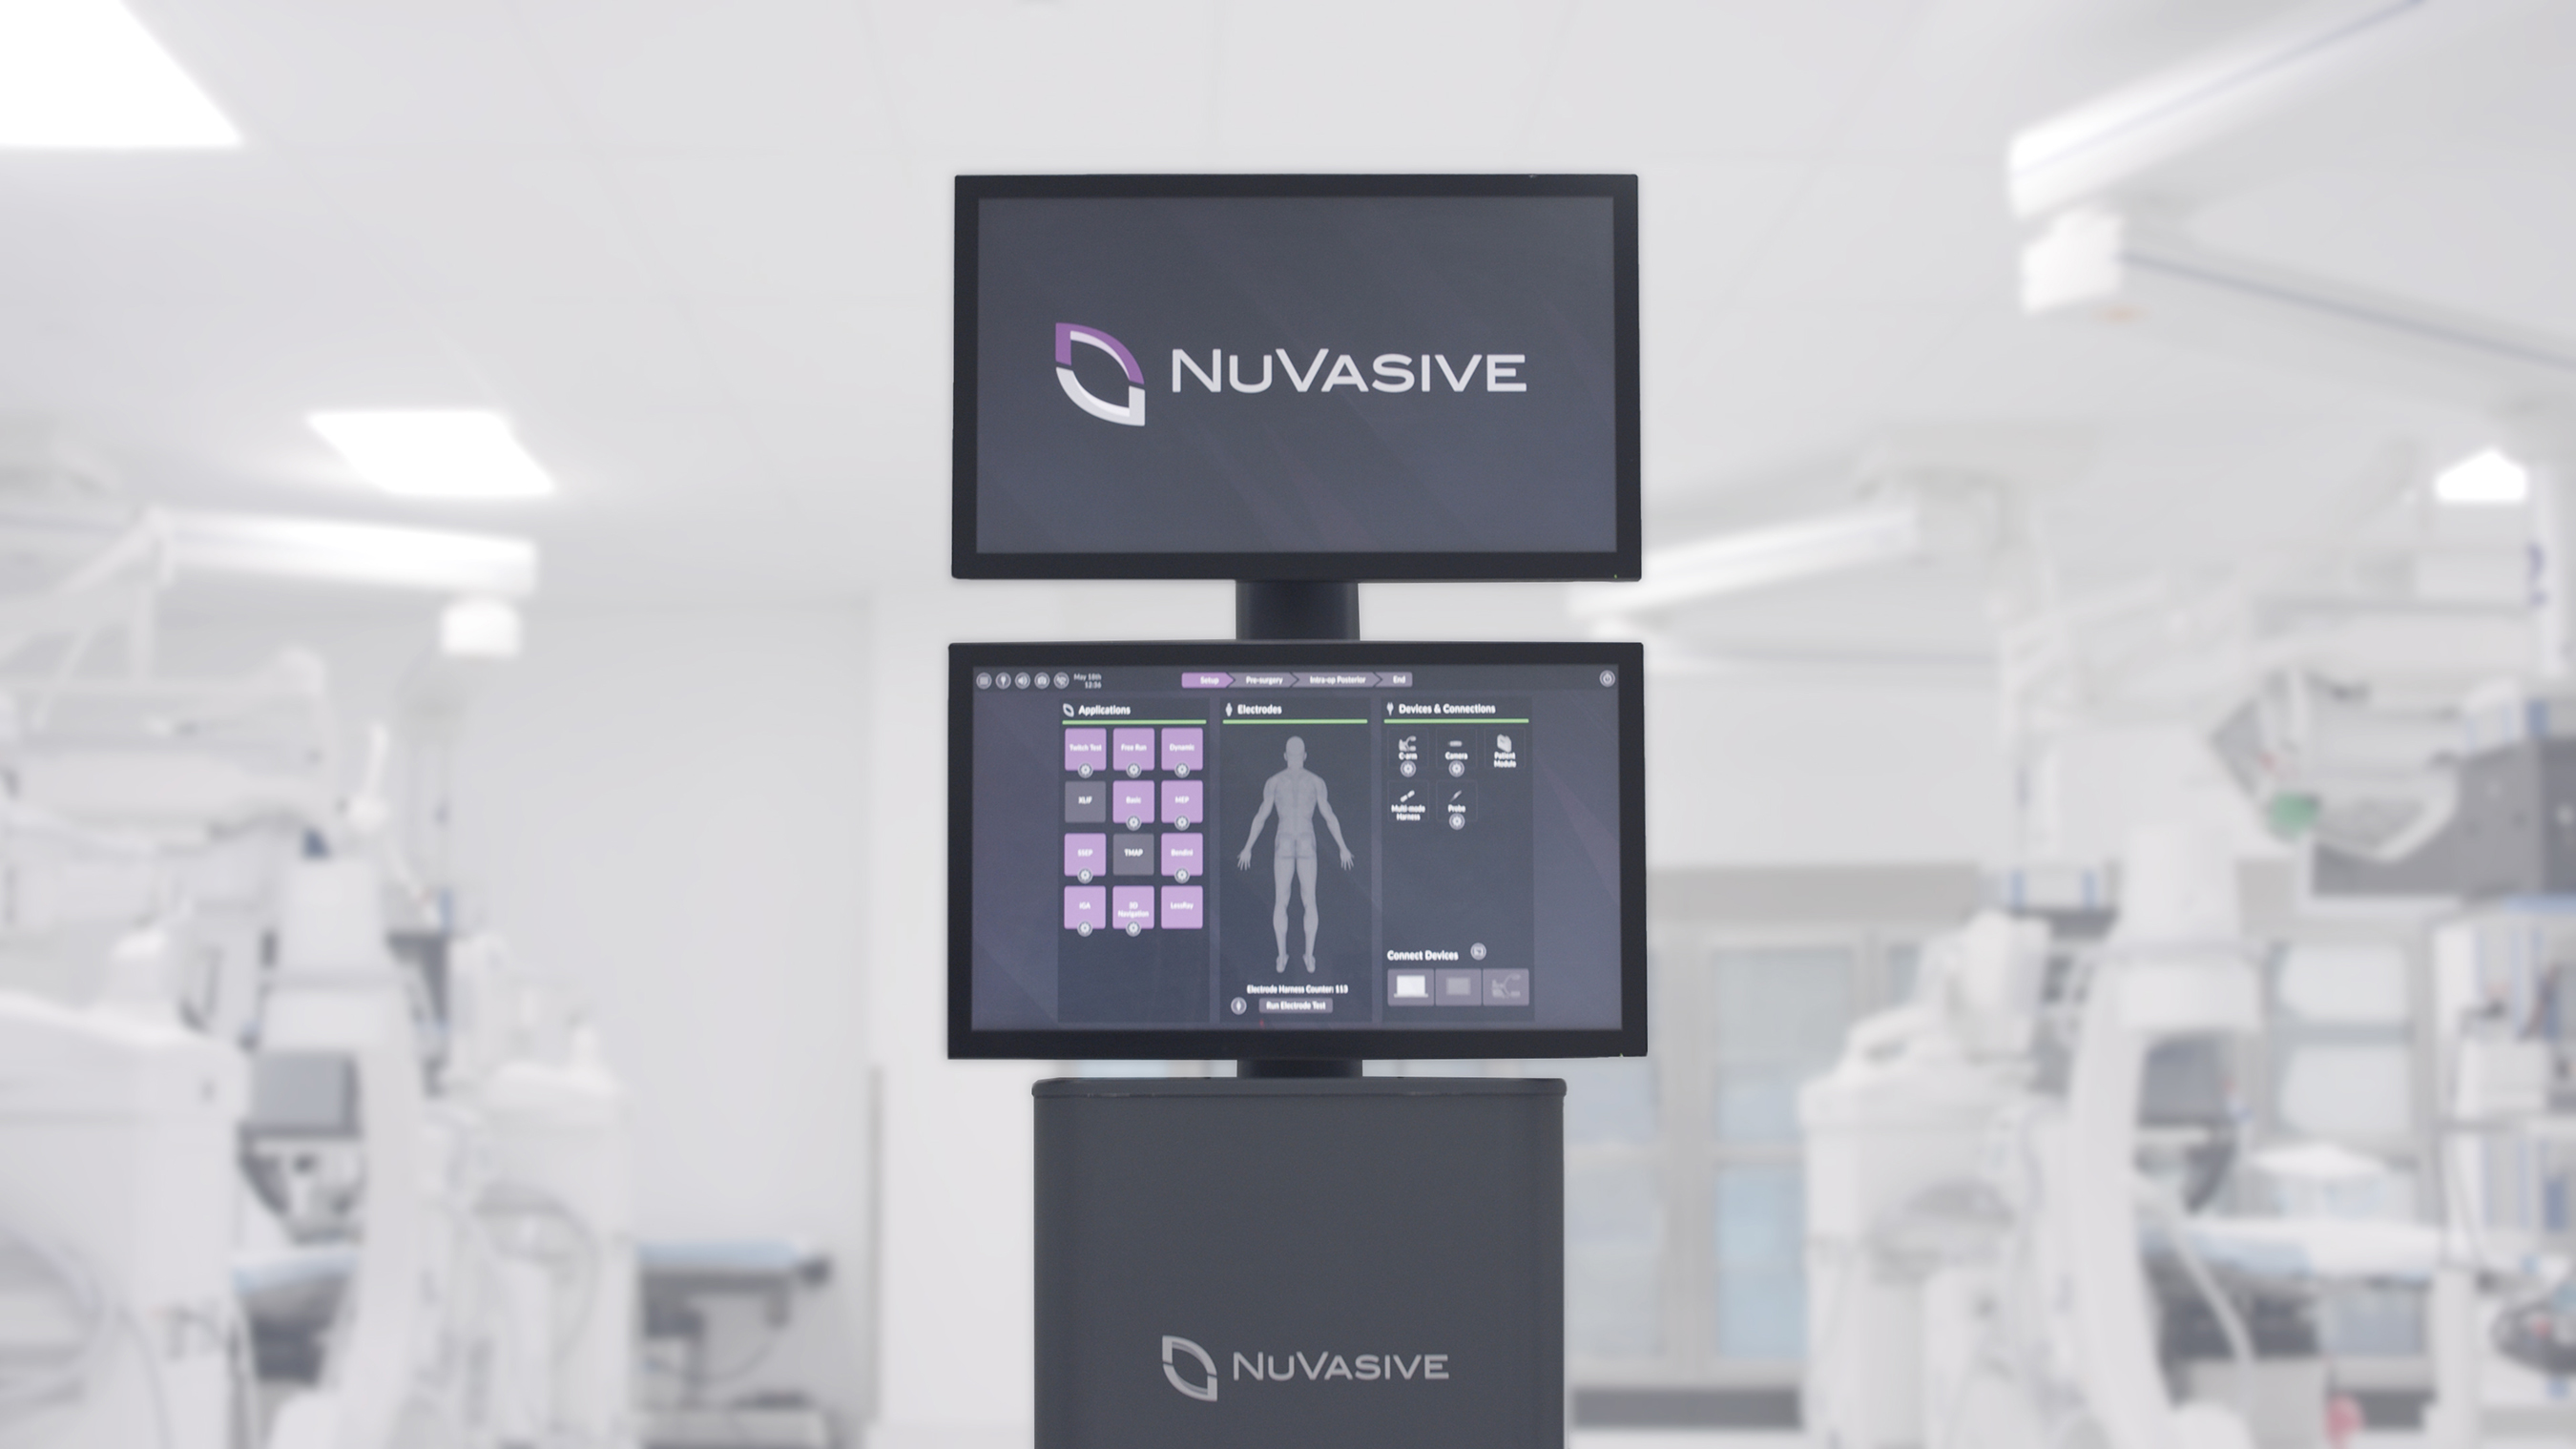 Pulse is a first-of-its-kind platform that integrates multiple technologies to address the most common clinical challenges in spine surgery.